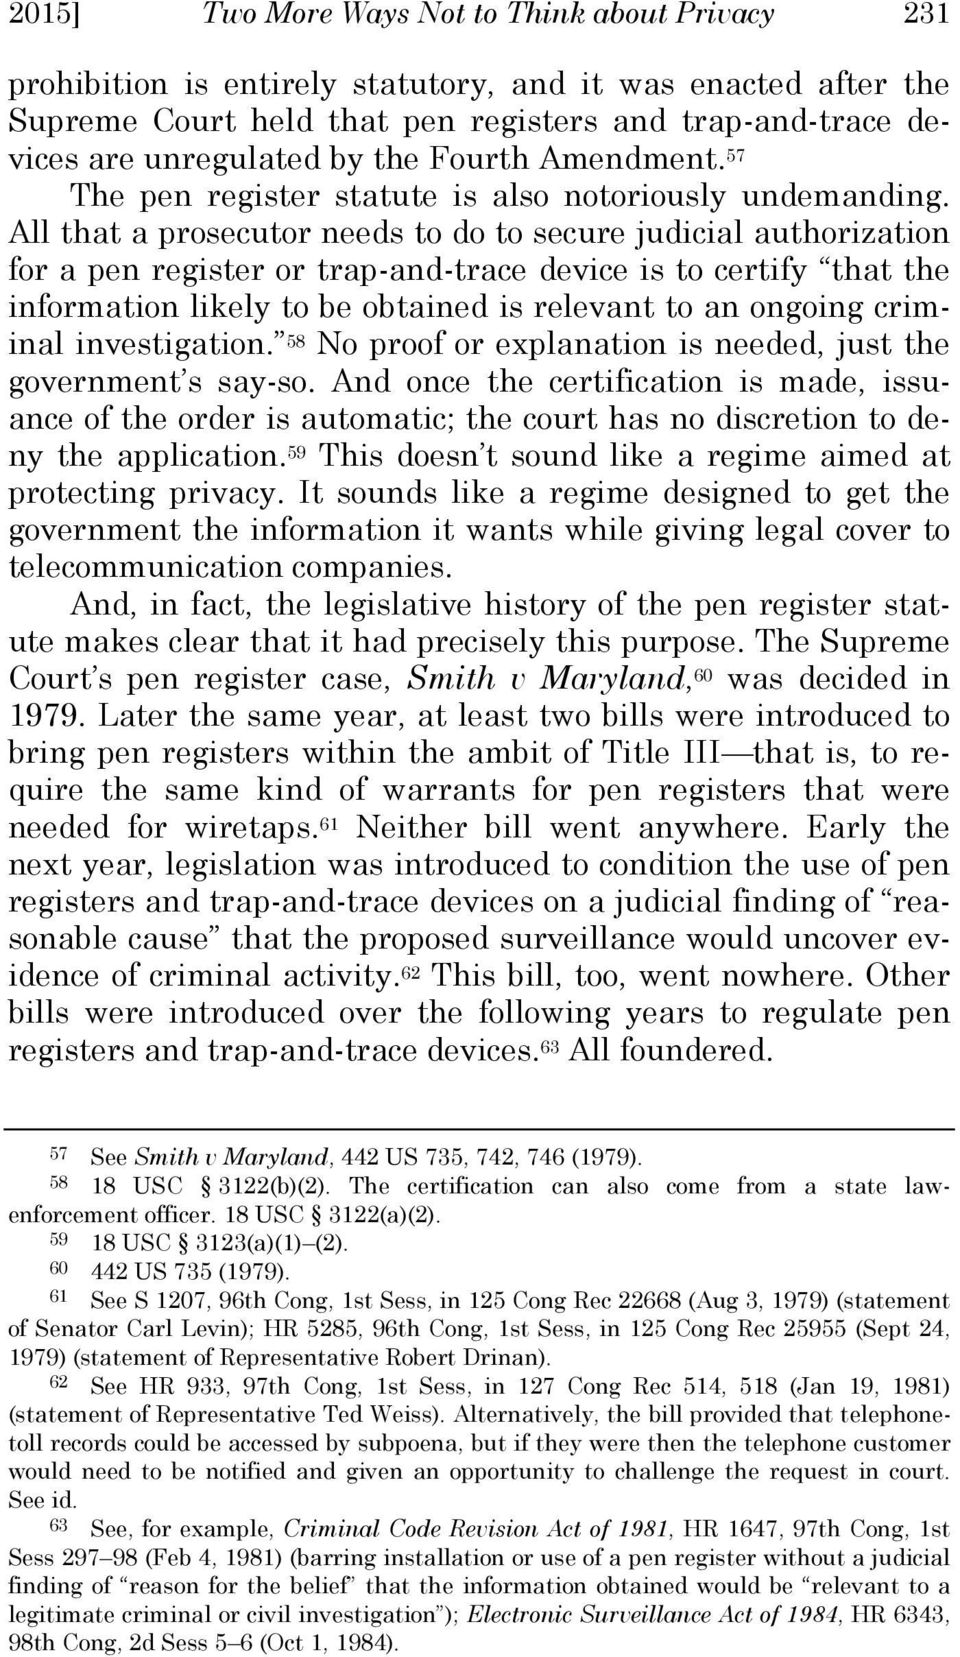 All that a prosecutor needs to do to secure judicial authorization for a pen register or trap-and-trace device is to certify that the information likely to be obtained is relevant to an ongoing